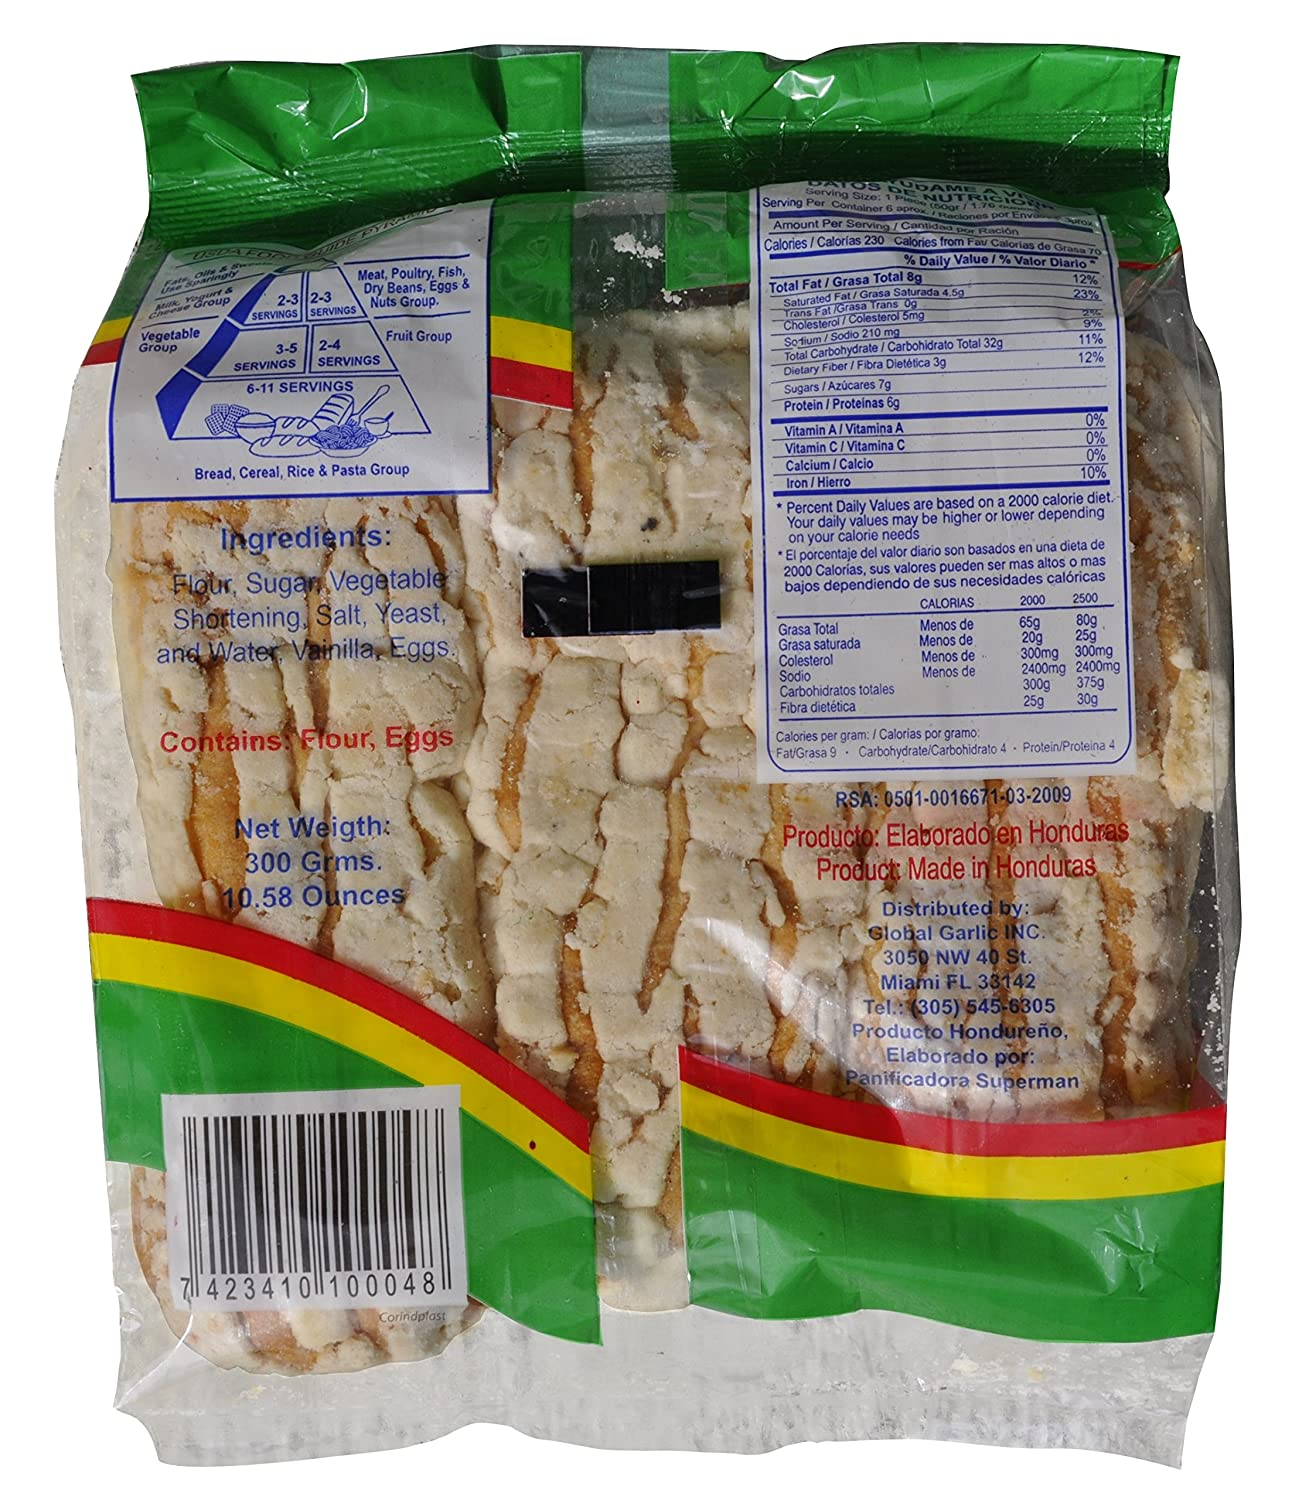 Semita de Arroz / Border Semita Rice 10 oz - 3 Pack: Amazon.com: Grocery & Gourmet Food